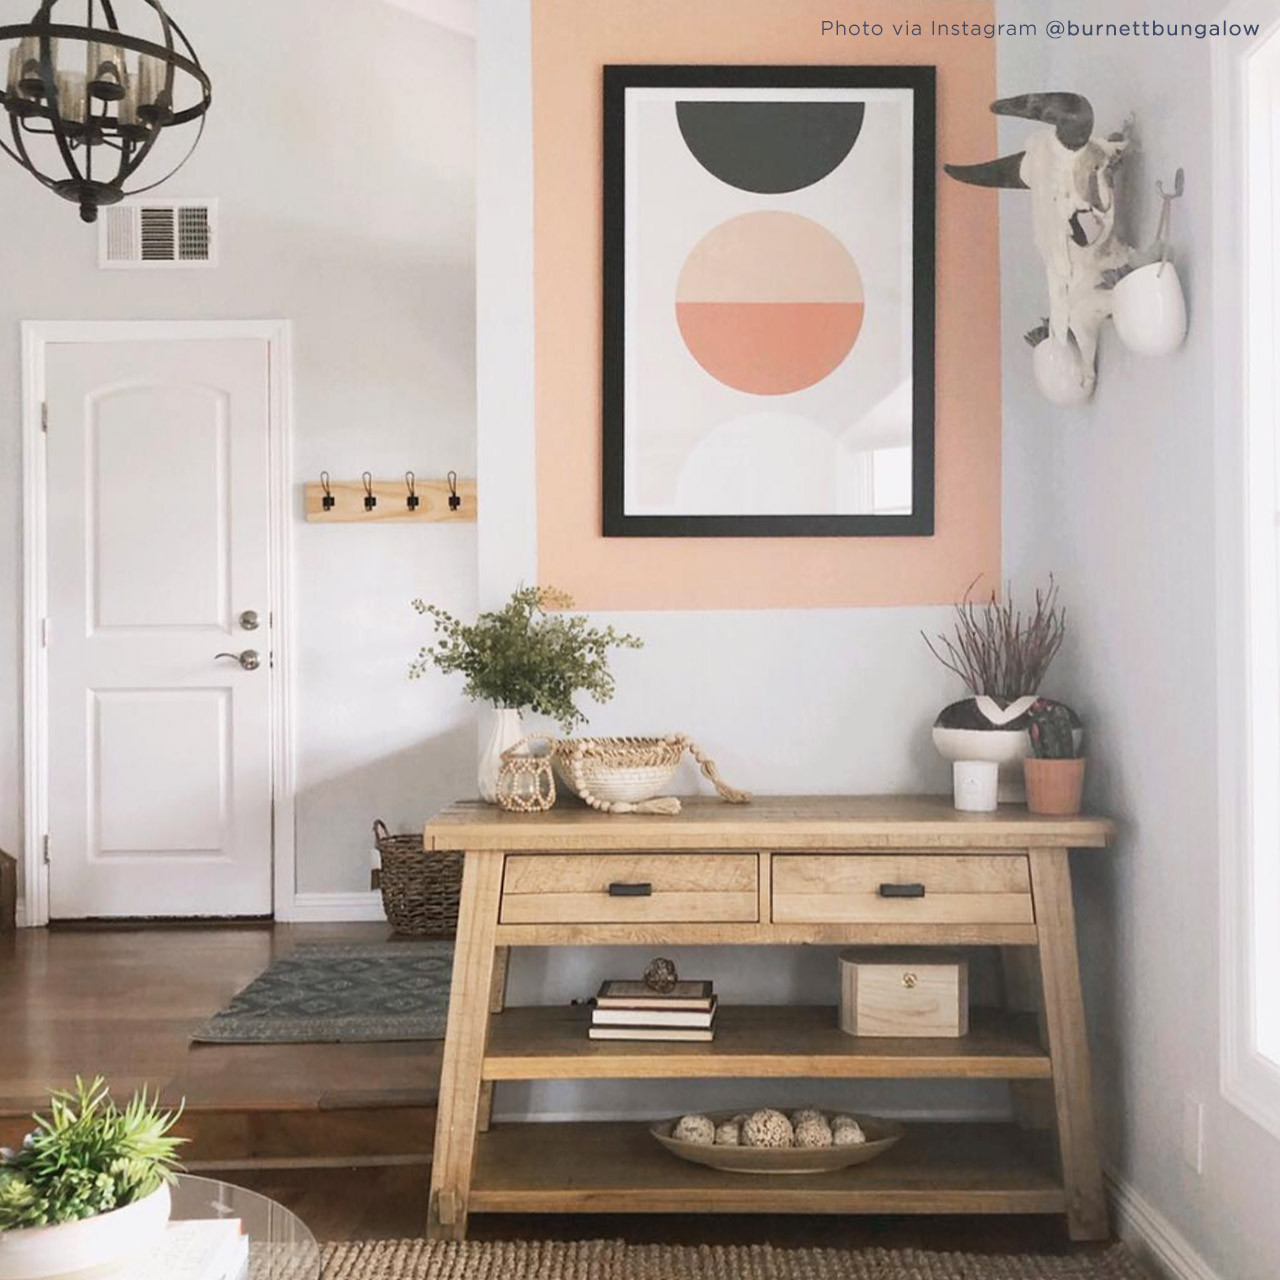 'Luna' Geometric Digital Art Print from The Printed Home, styled by Janelle @burnettebungalow